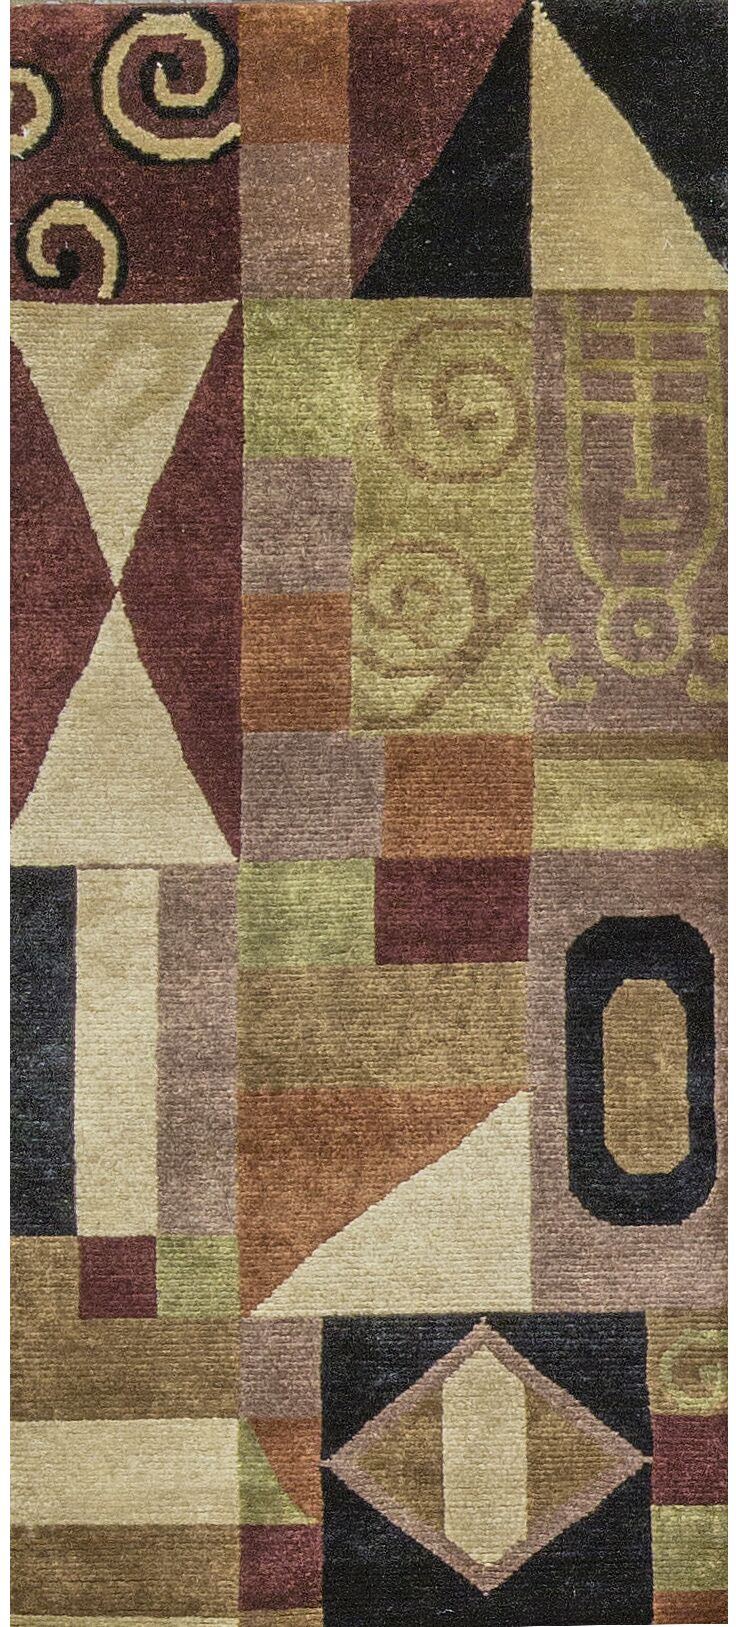 One-of-a-Kind Handwoven Wool Brown/Green Indoor Area Rug